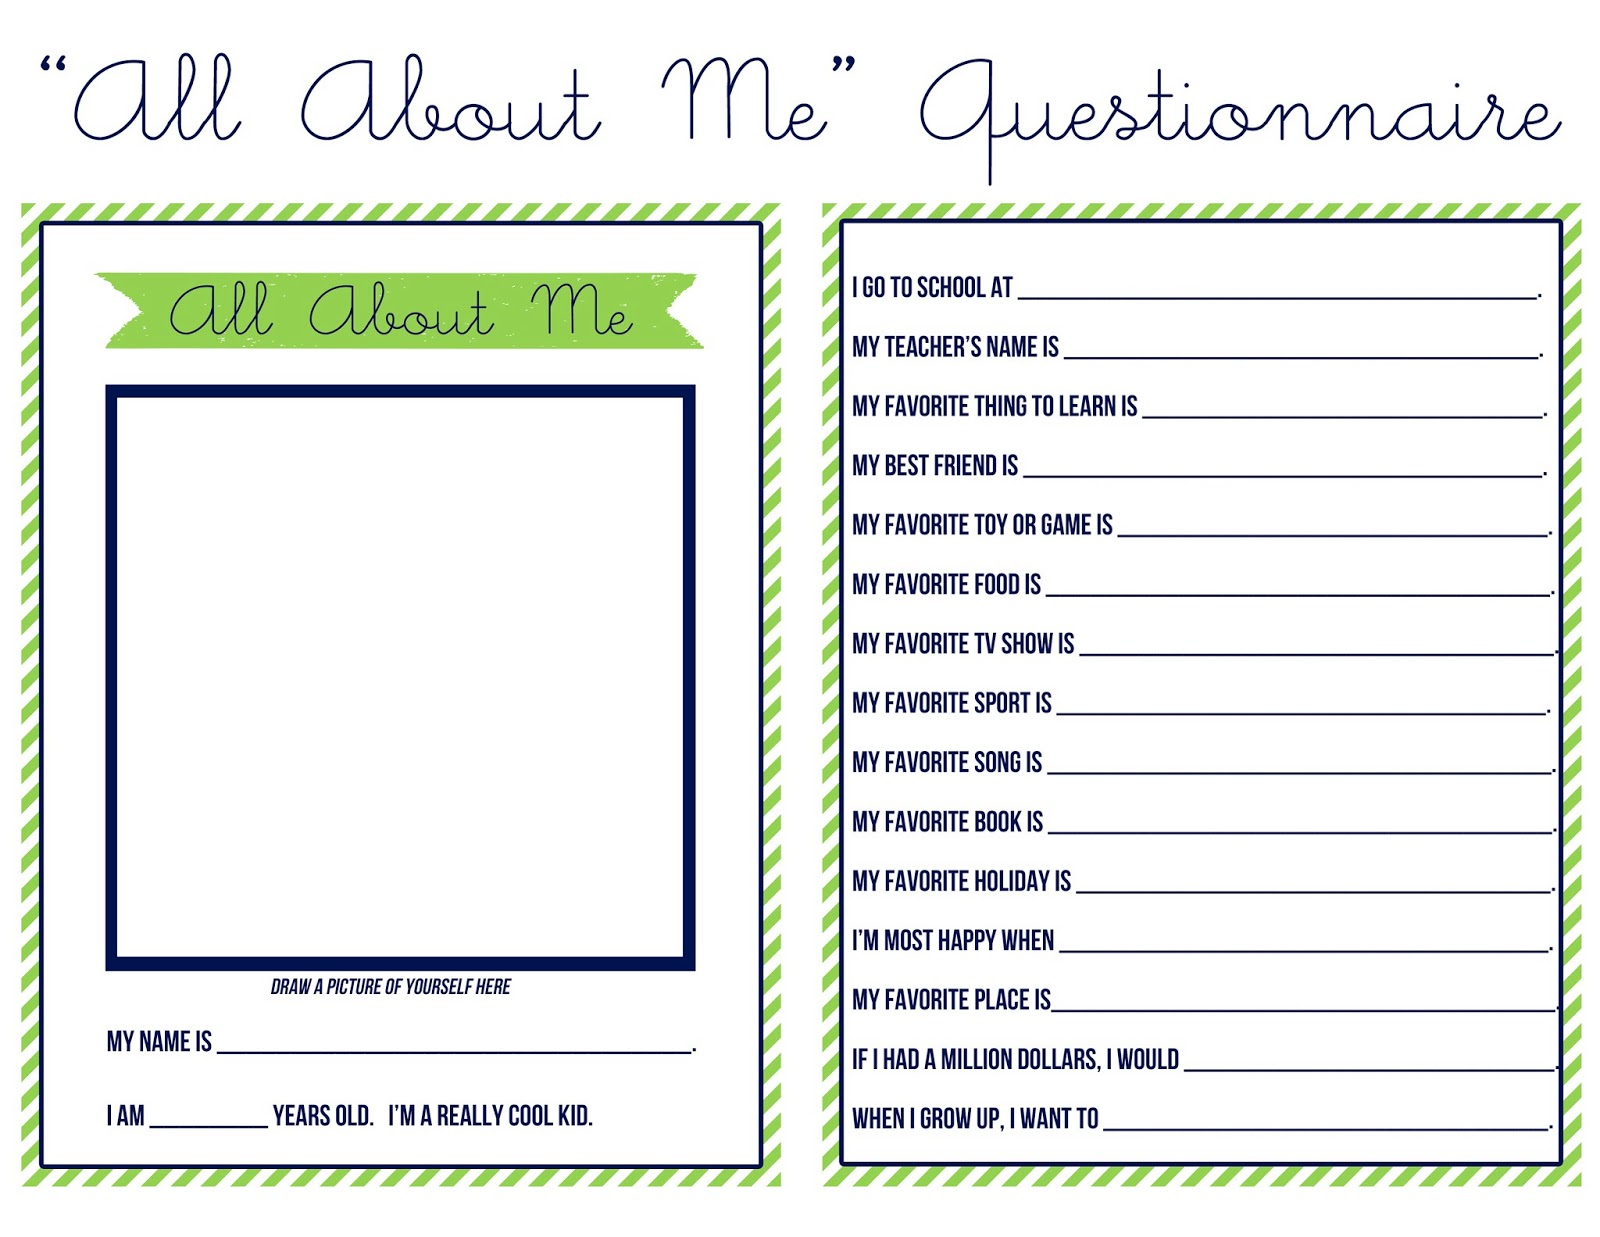 about me template for students - just peachy designs all about me questionnaire